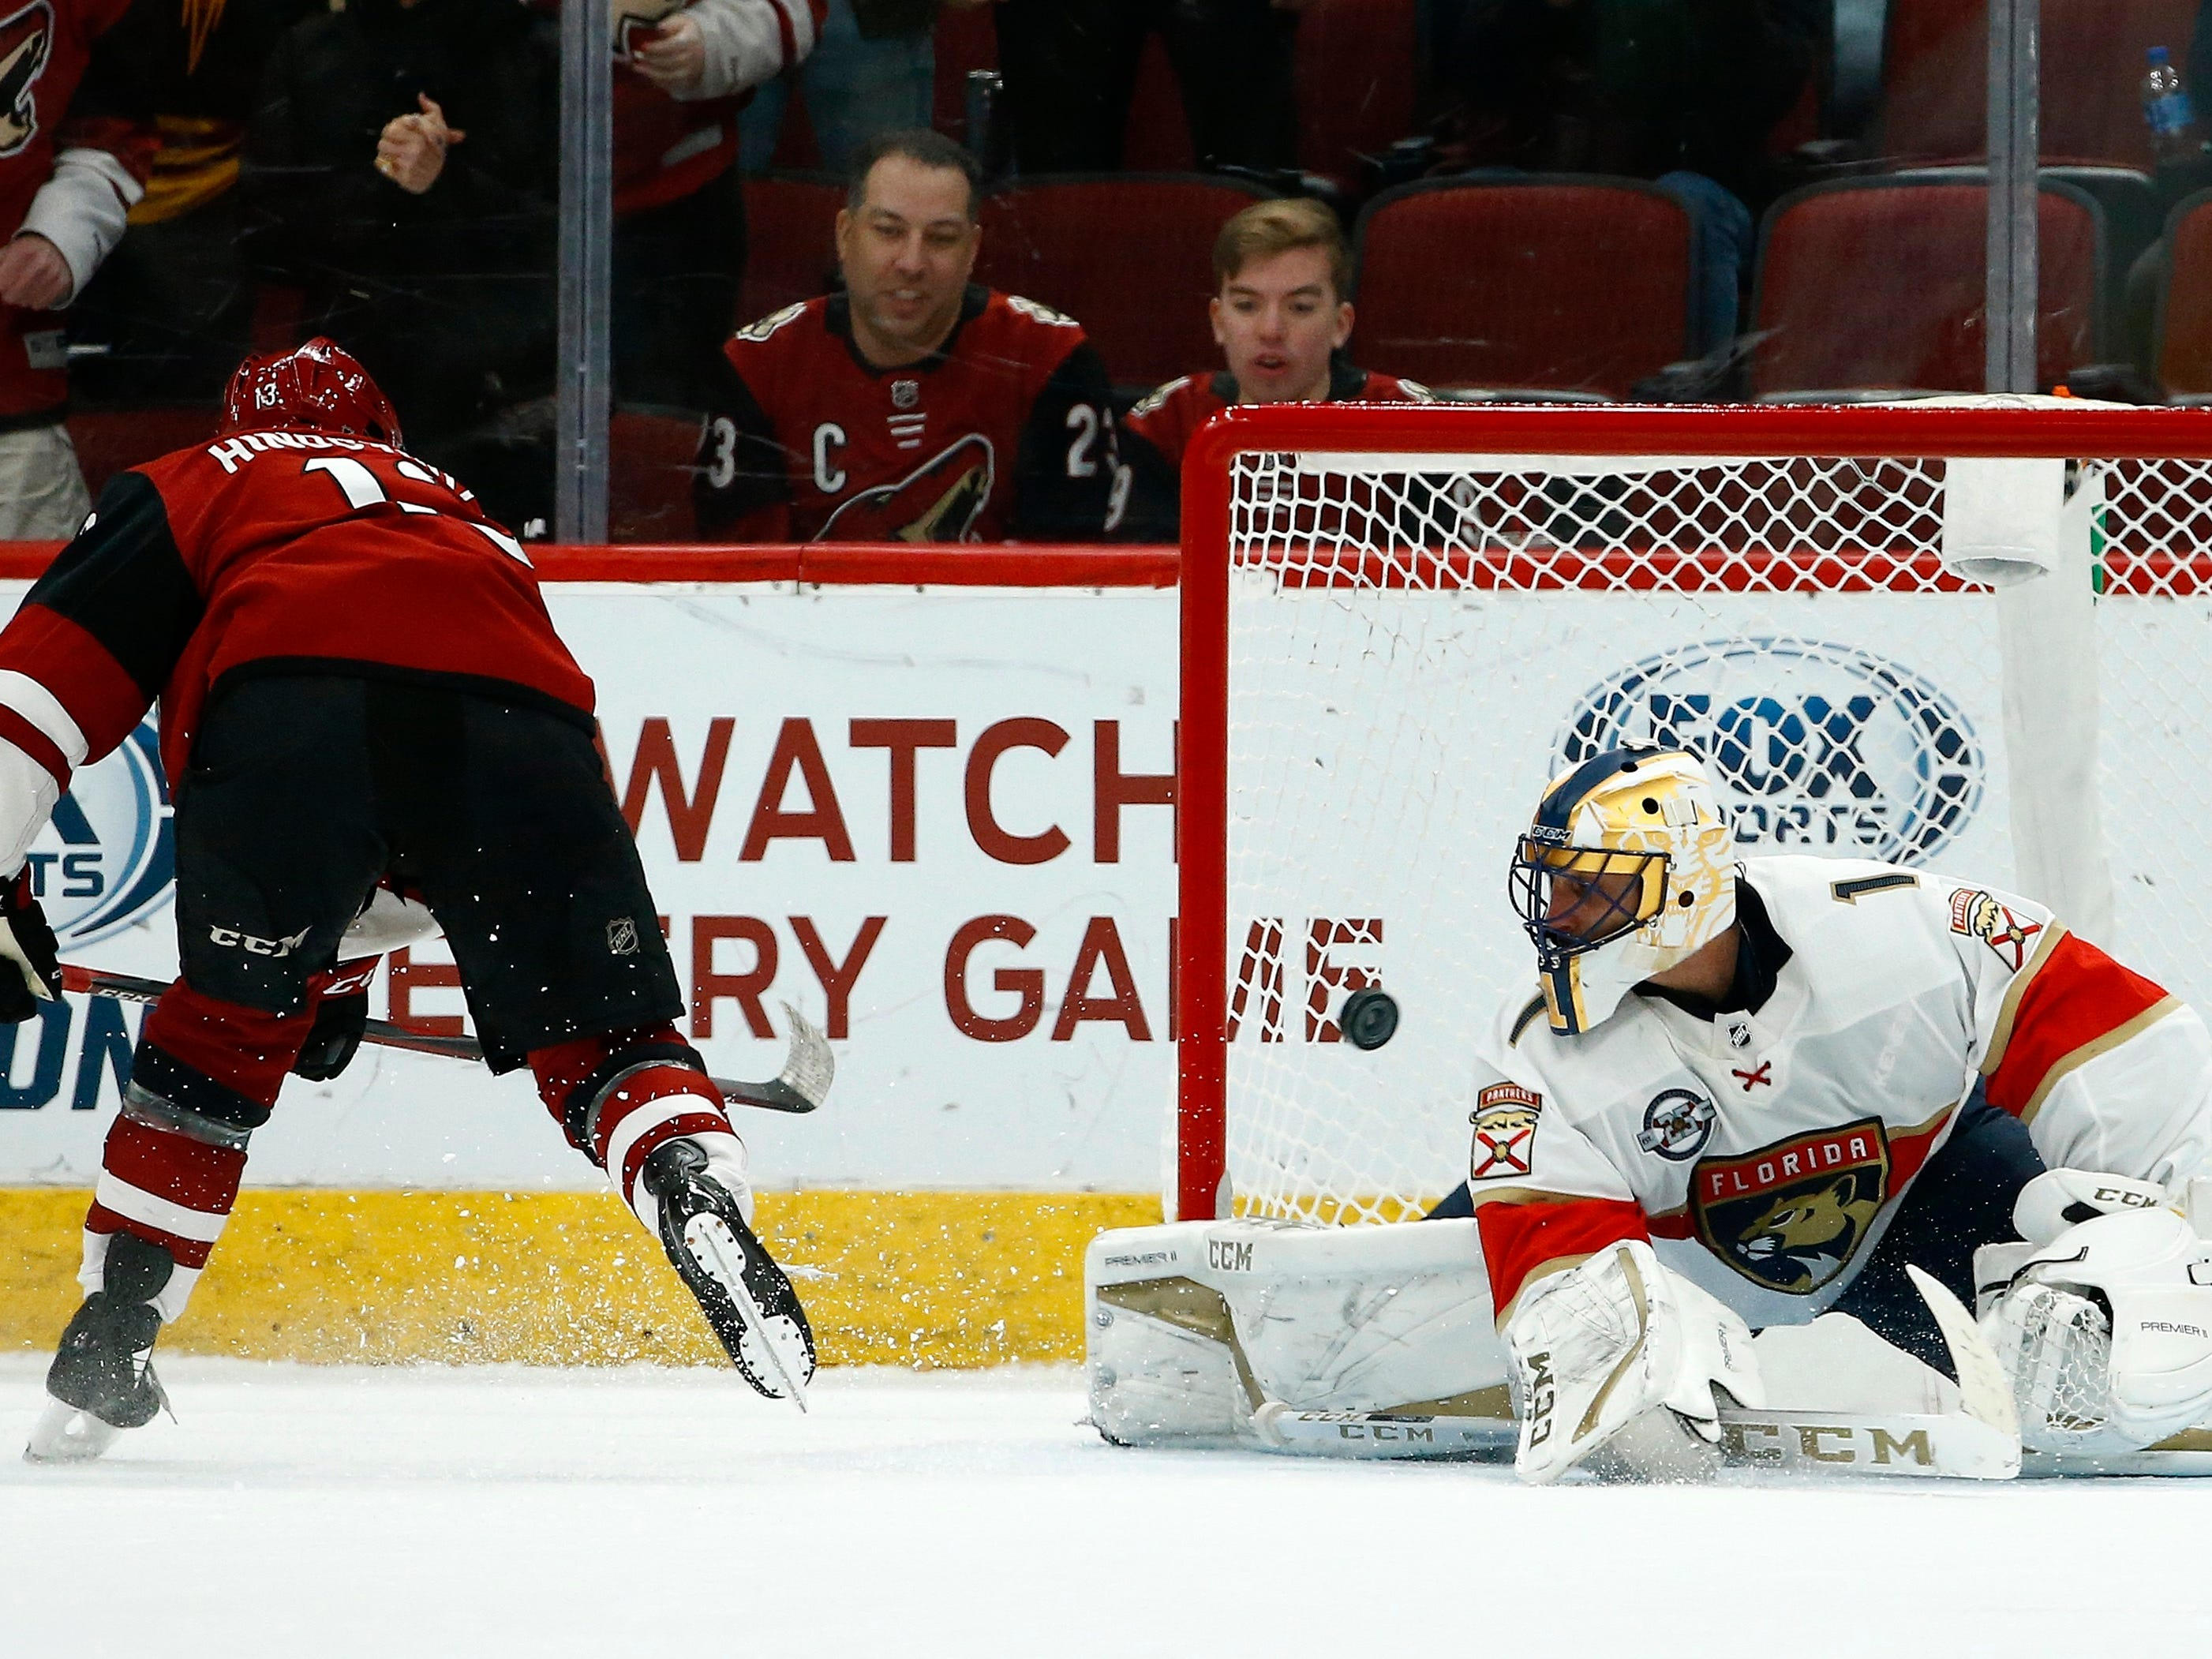 Arizona Coyotes center Vinnie Hinostroza, left, scores against Florida Panthers goaltender Roberto Luongo during the shootout of an NHL hockey game Tuesday, Feb. 26, 2019, in Glendale, Ariz. The Coyotes won 4-3.